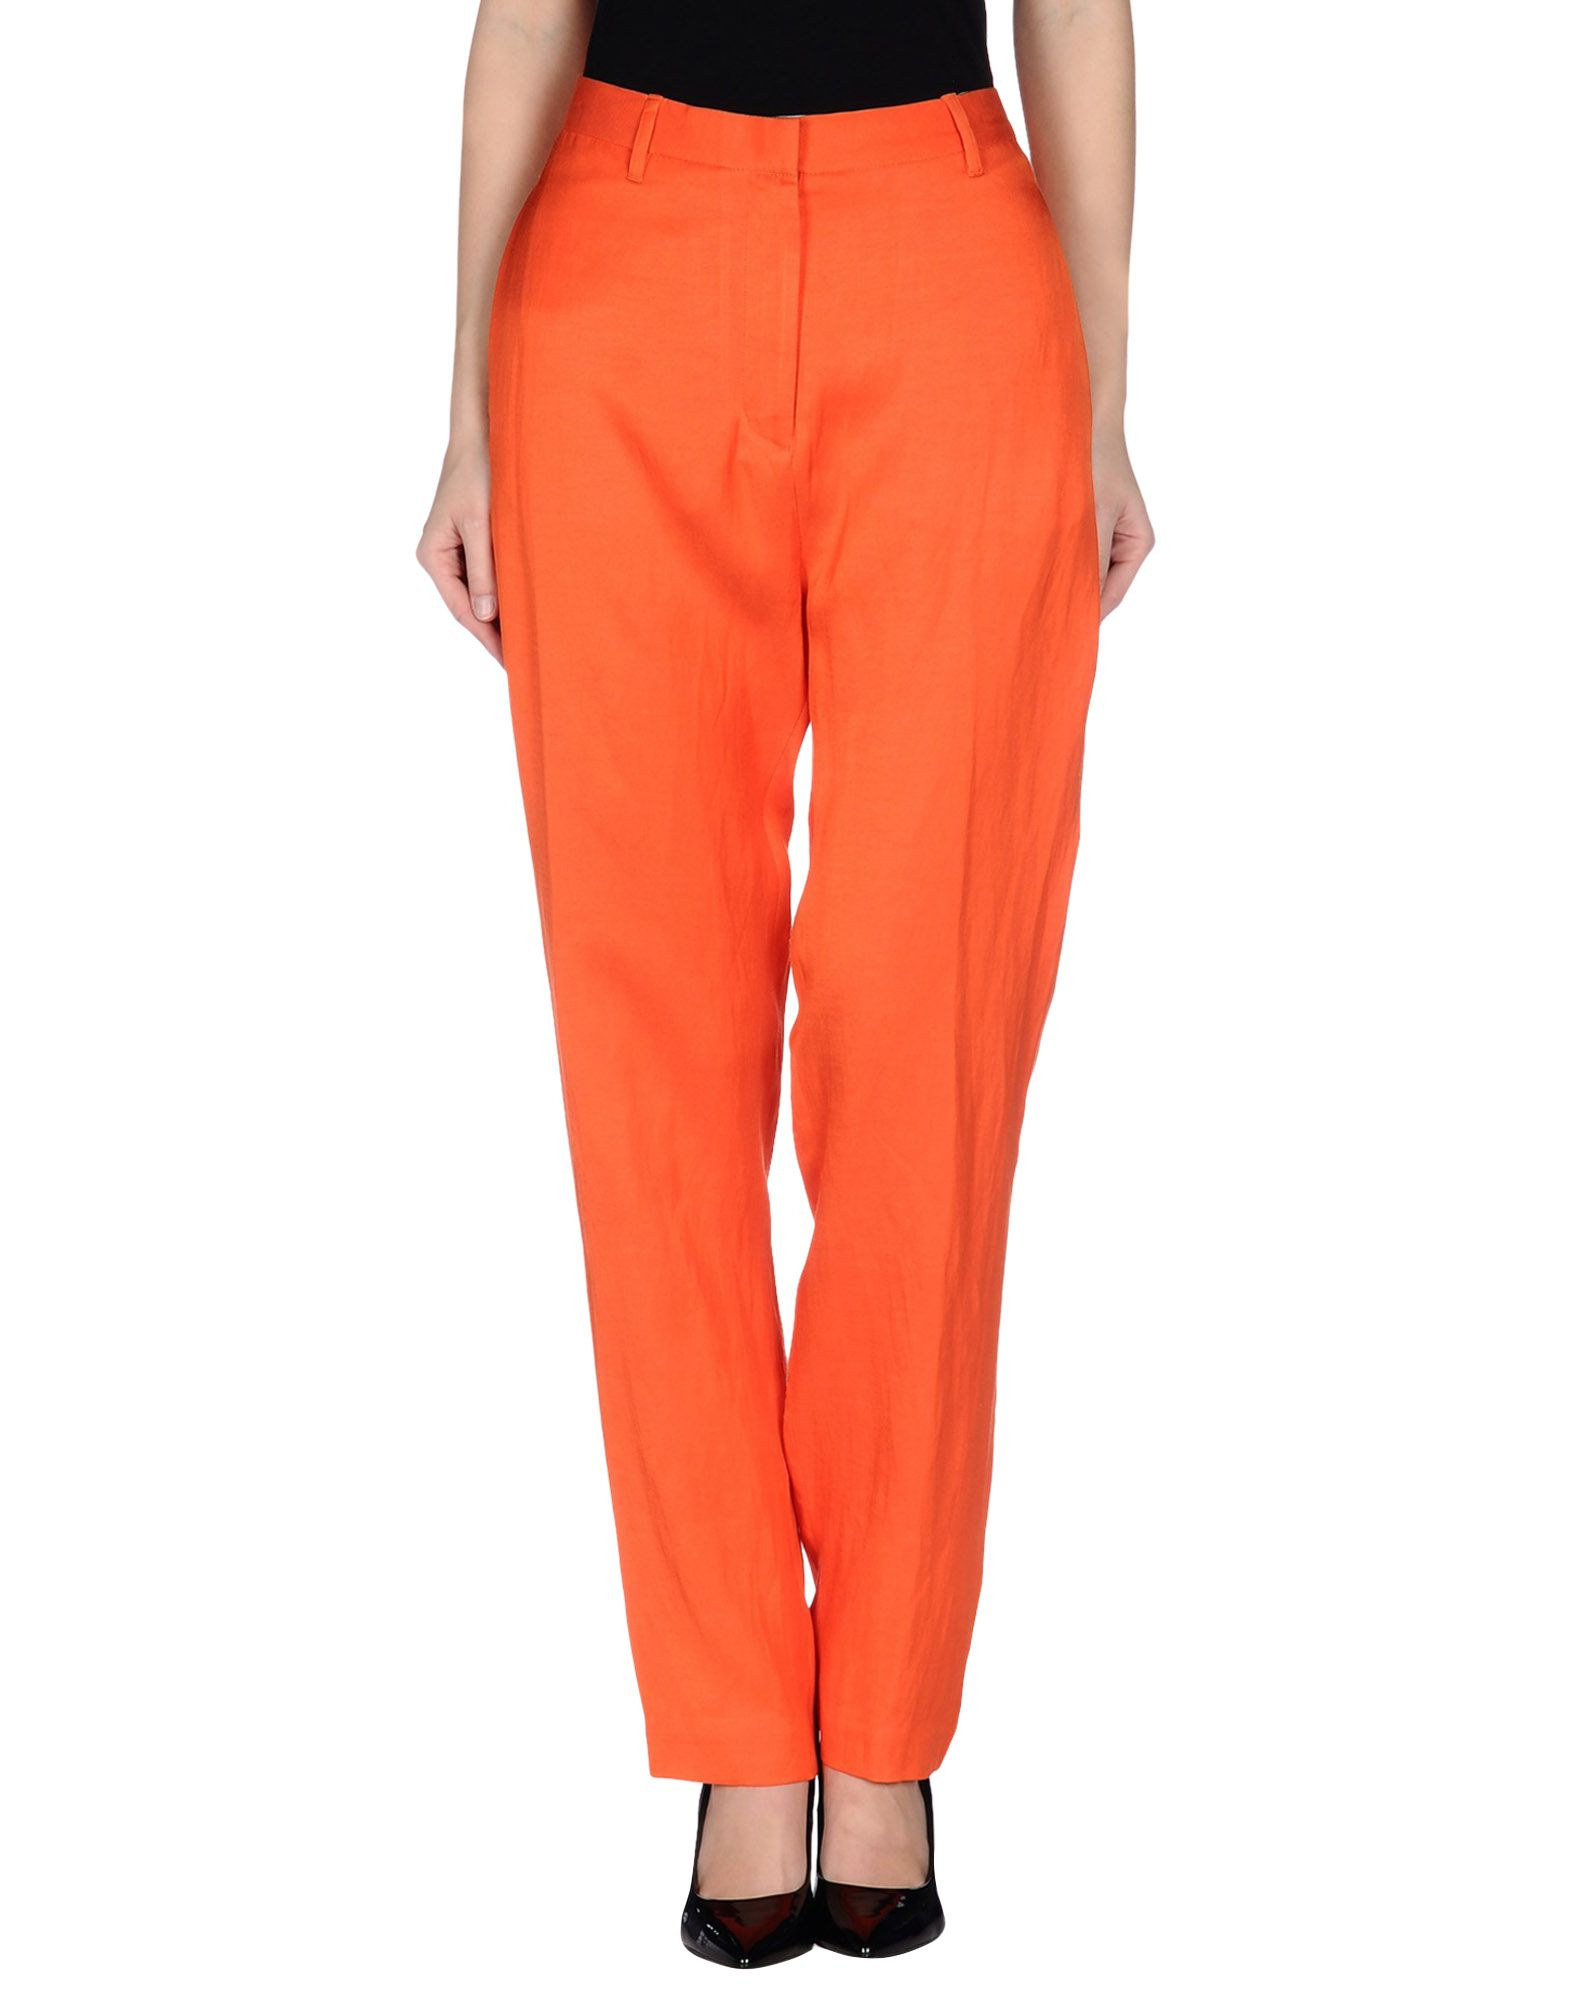 Amazing Brand Bright Orange Skinny Leg Pants Women